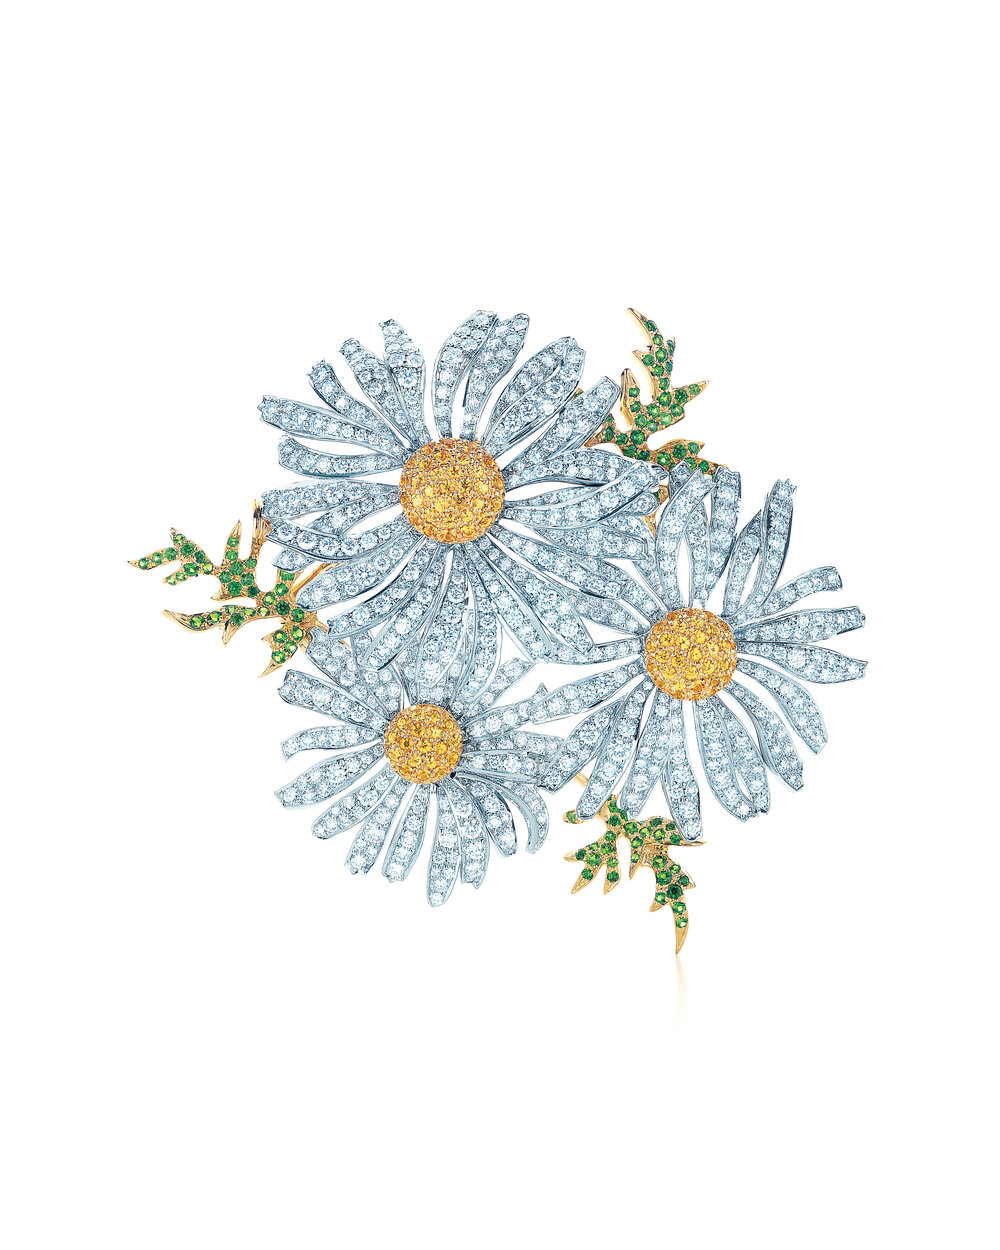 Tiffany Daisy Brooch with Diamonds, Spessartites and Tsavorites in 18 karat White and Yellow Gold, Tiffany.com